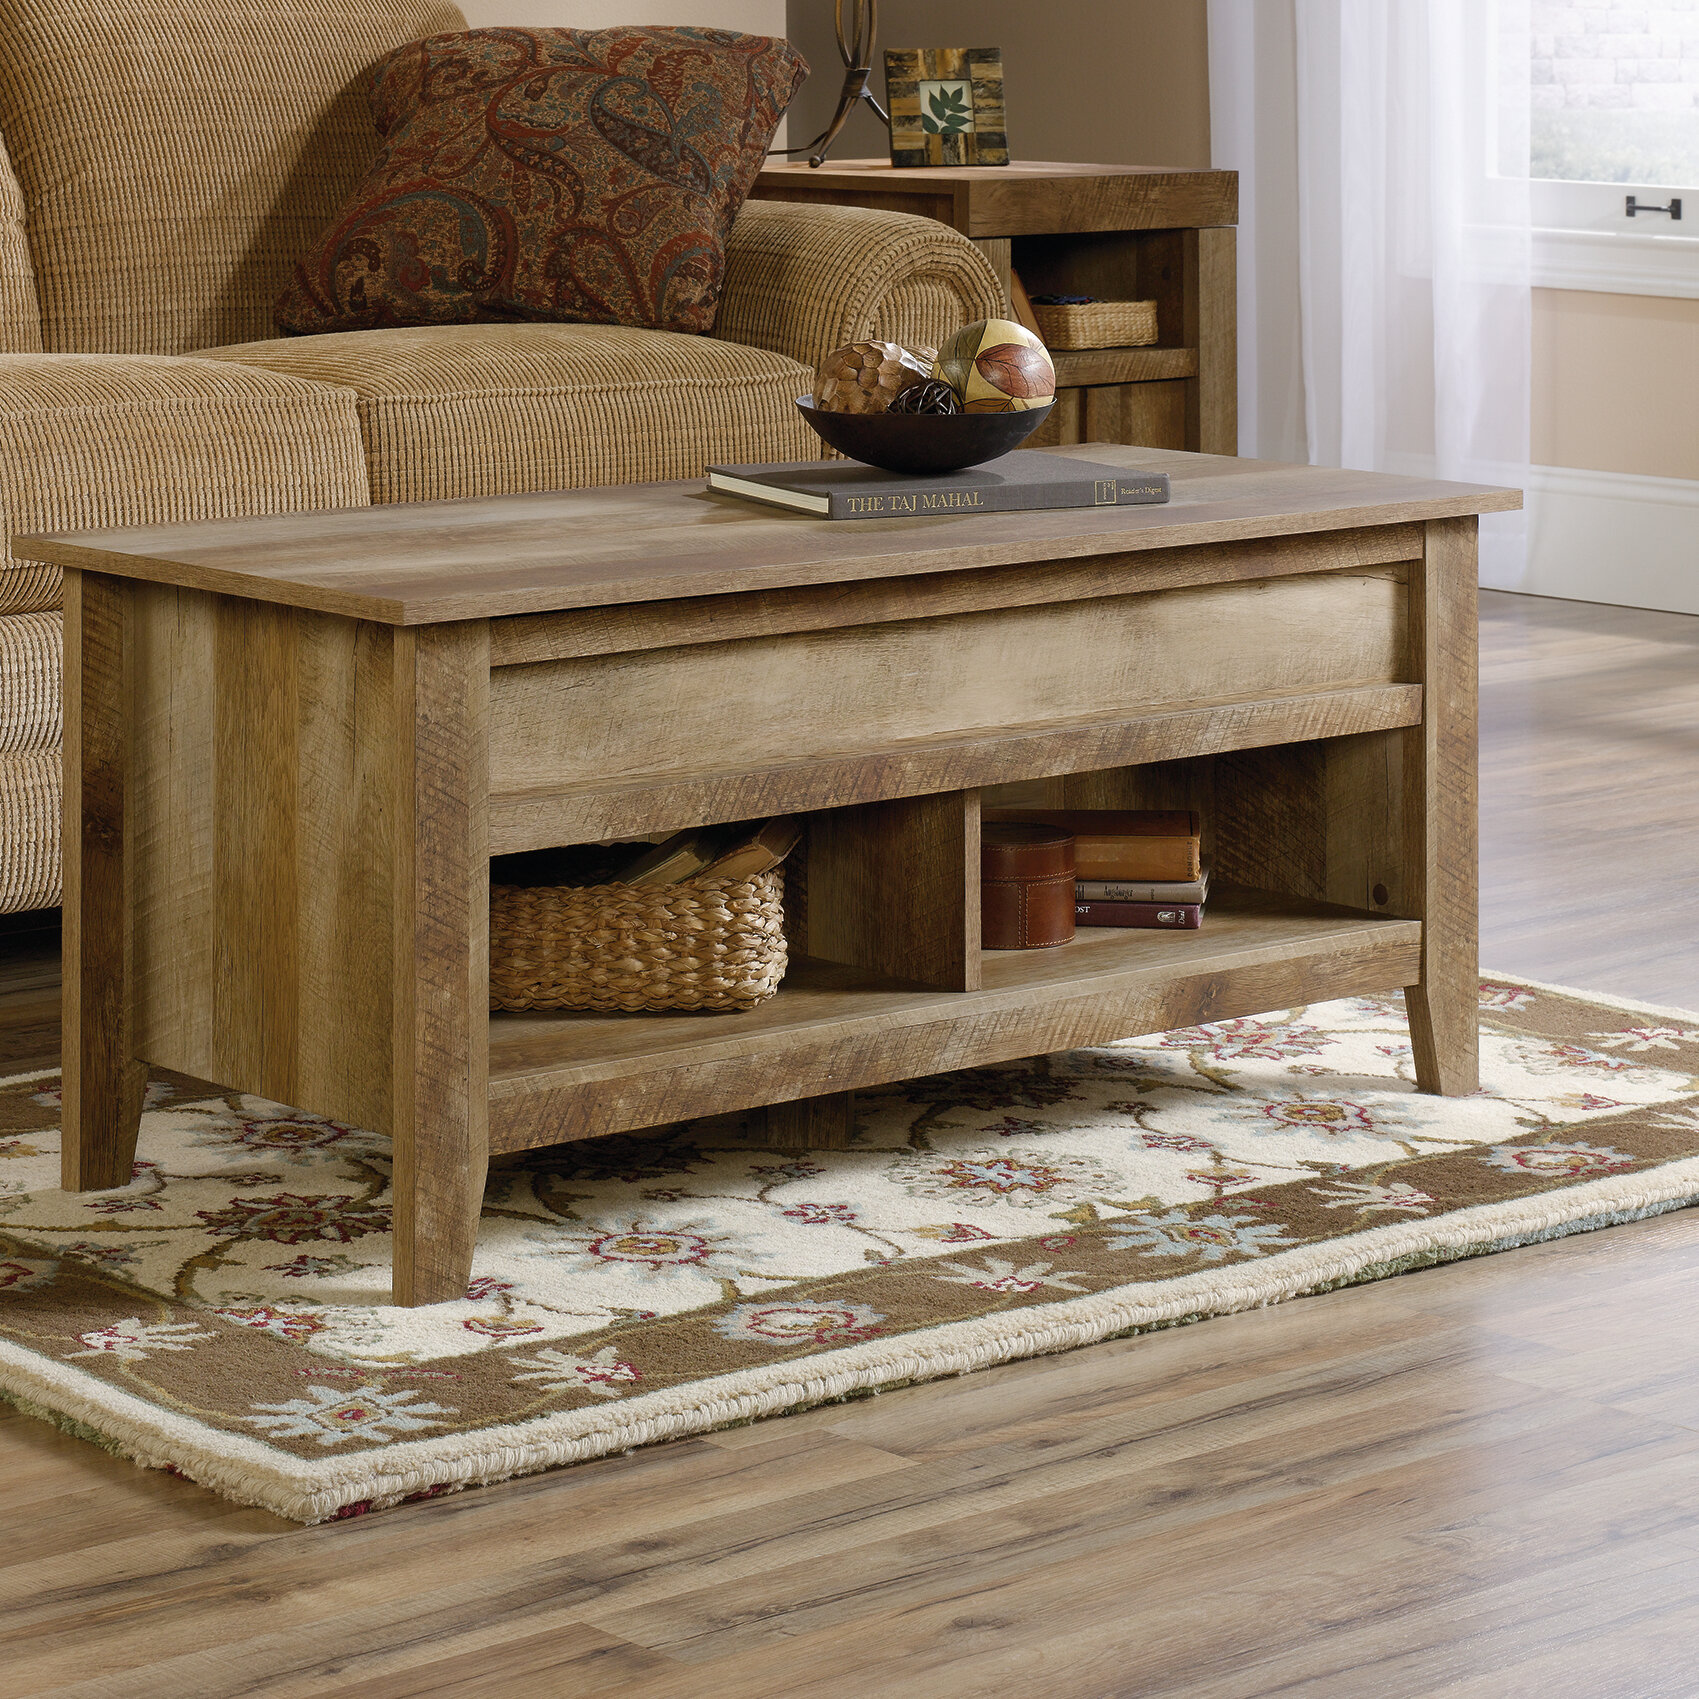 Lift Top Coffee Tables You Ll Love Wayfair ~ End Tables And Sofa Tables